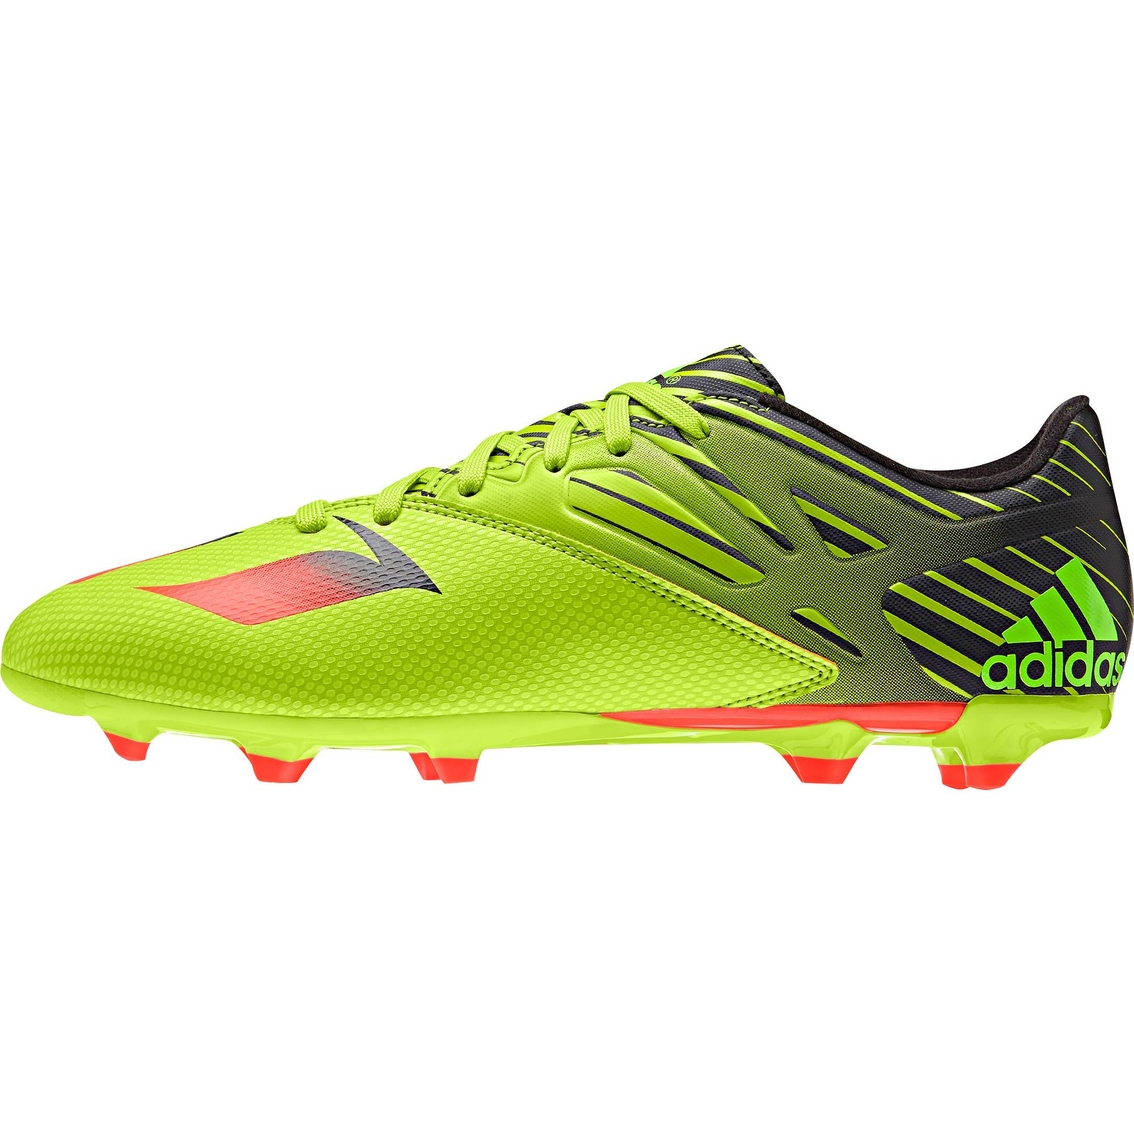 Adidas Men S Messi 15 3 Soccer Shoes Soccer Shoes Shop The Exchange